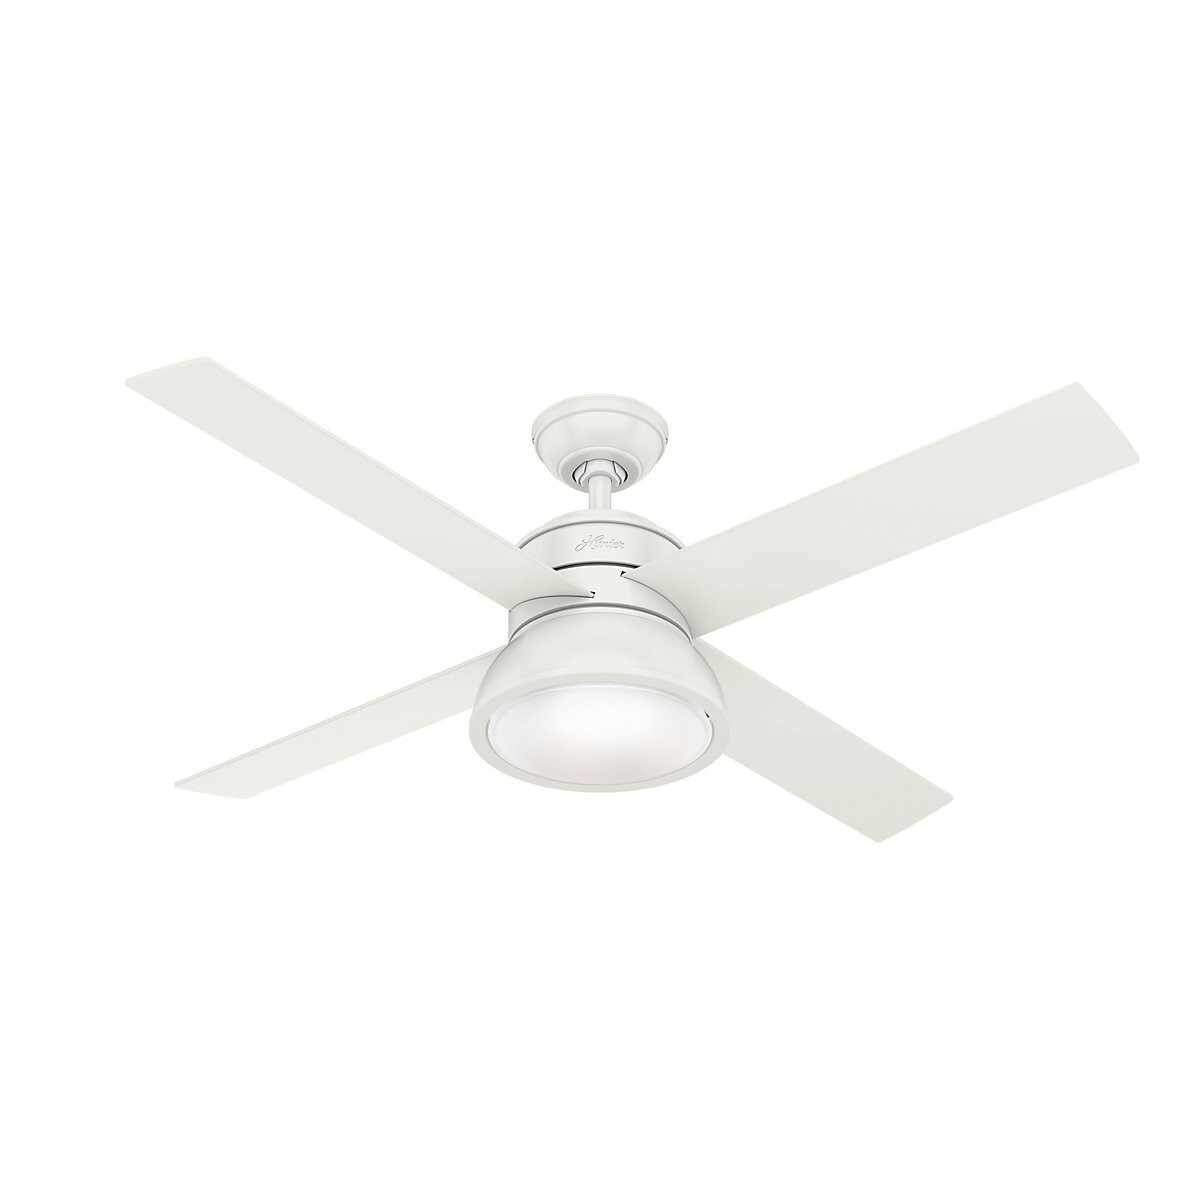 HUNTER LOKI Fresh White ceiling fan Ø137 with Integrated Luminaire and Remote Control